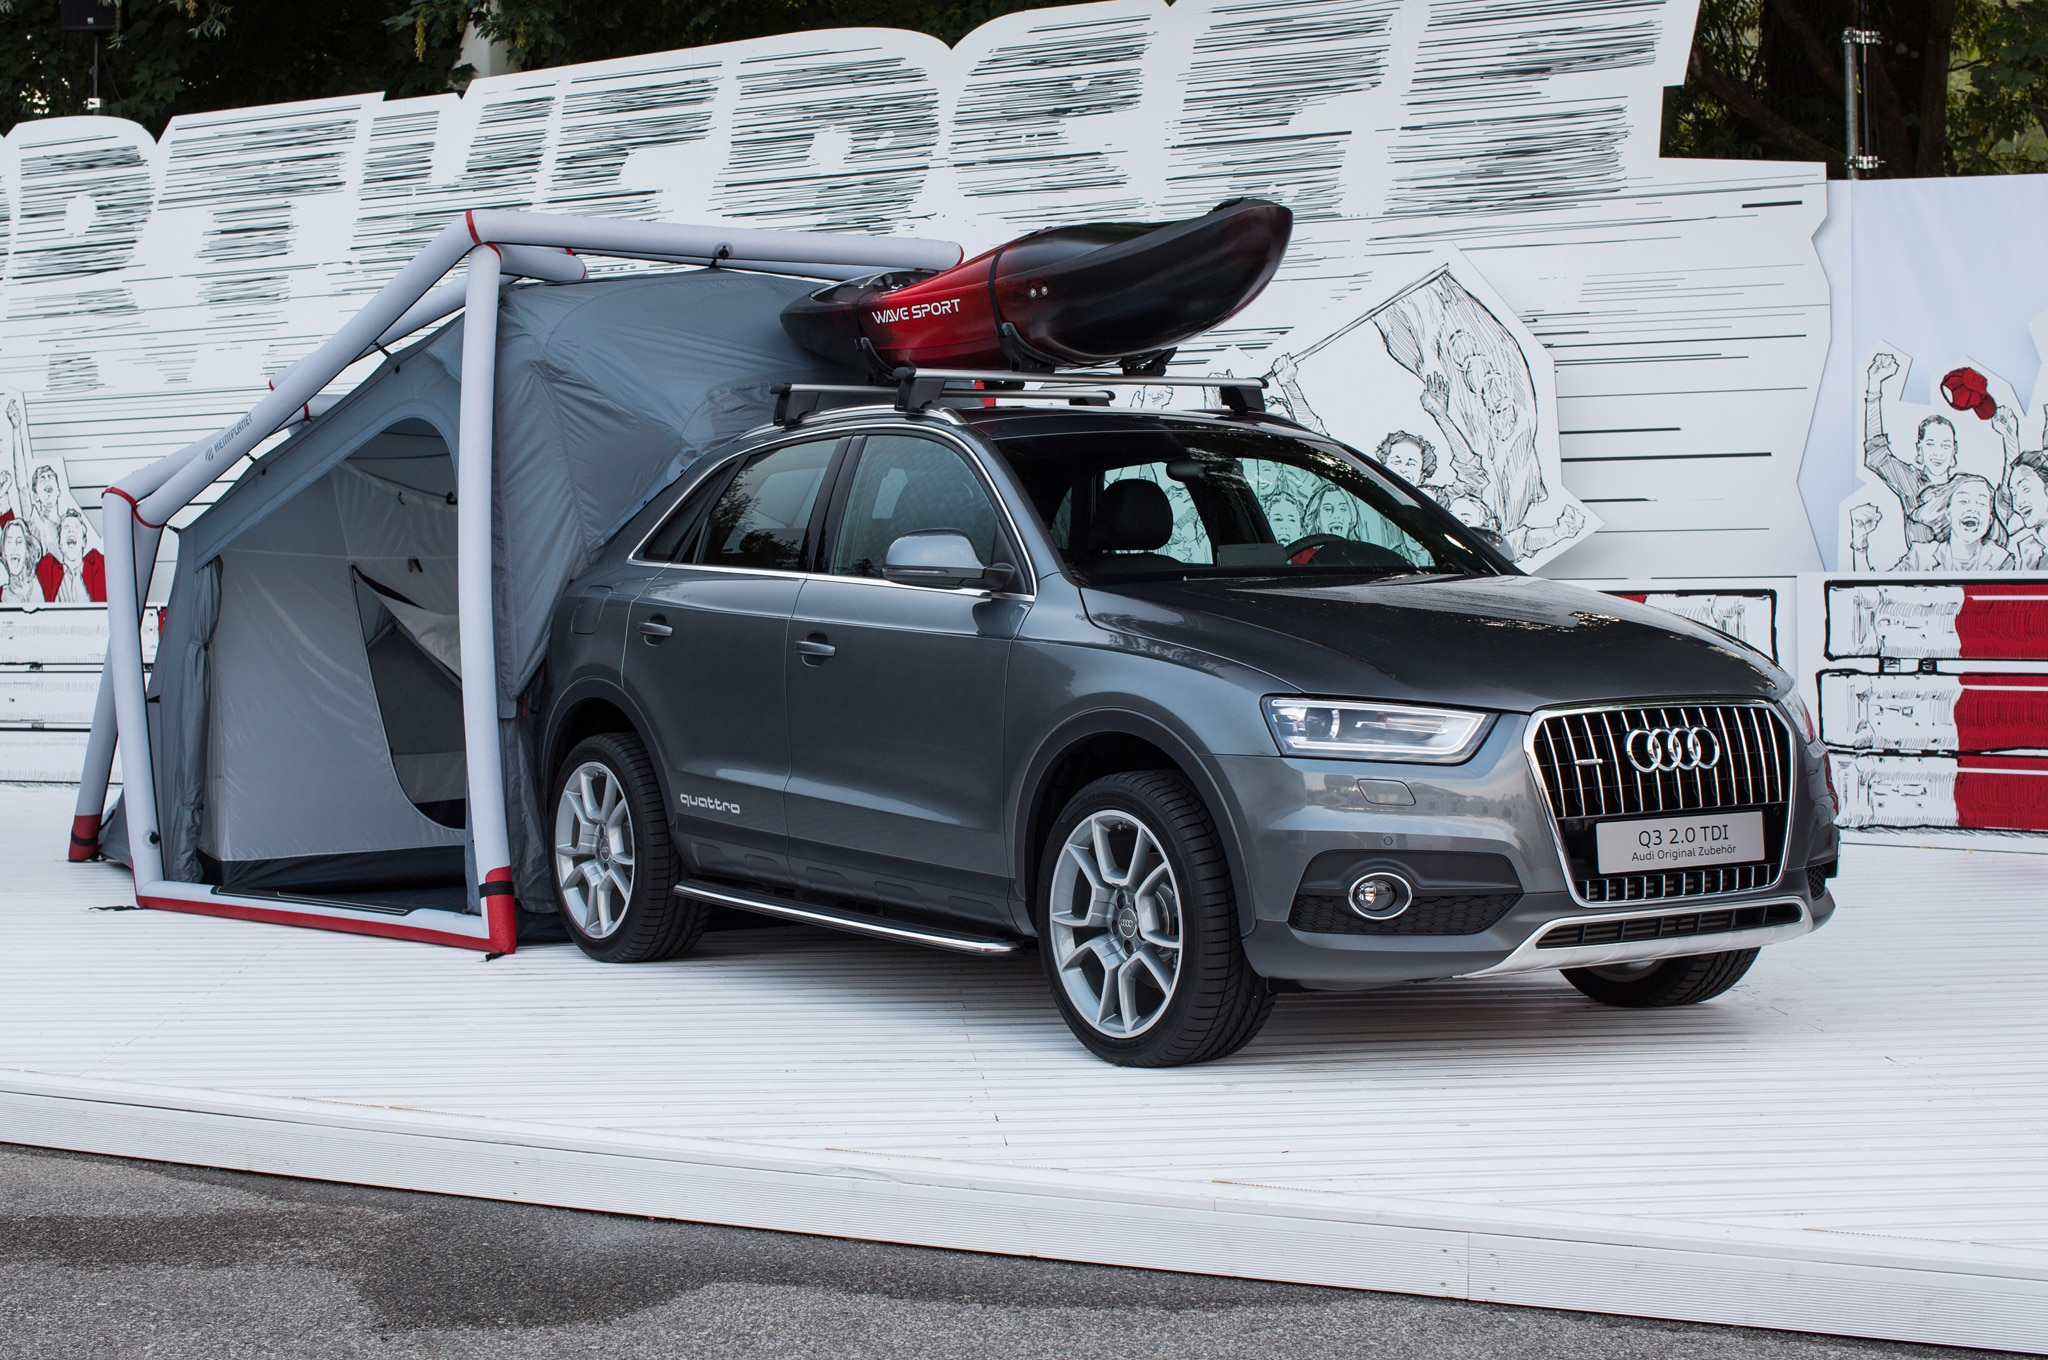 Audi Q3 Tent And Kayak Mount Shown At Worthersee Side View1